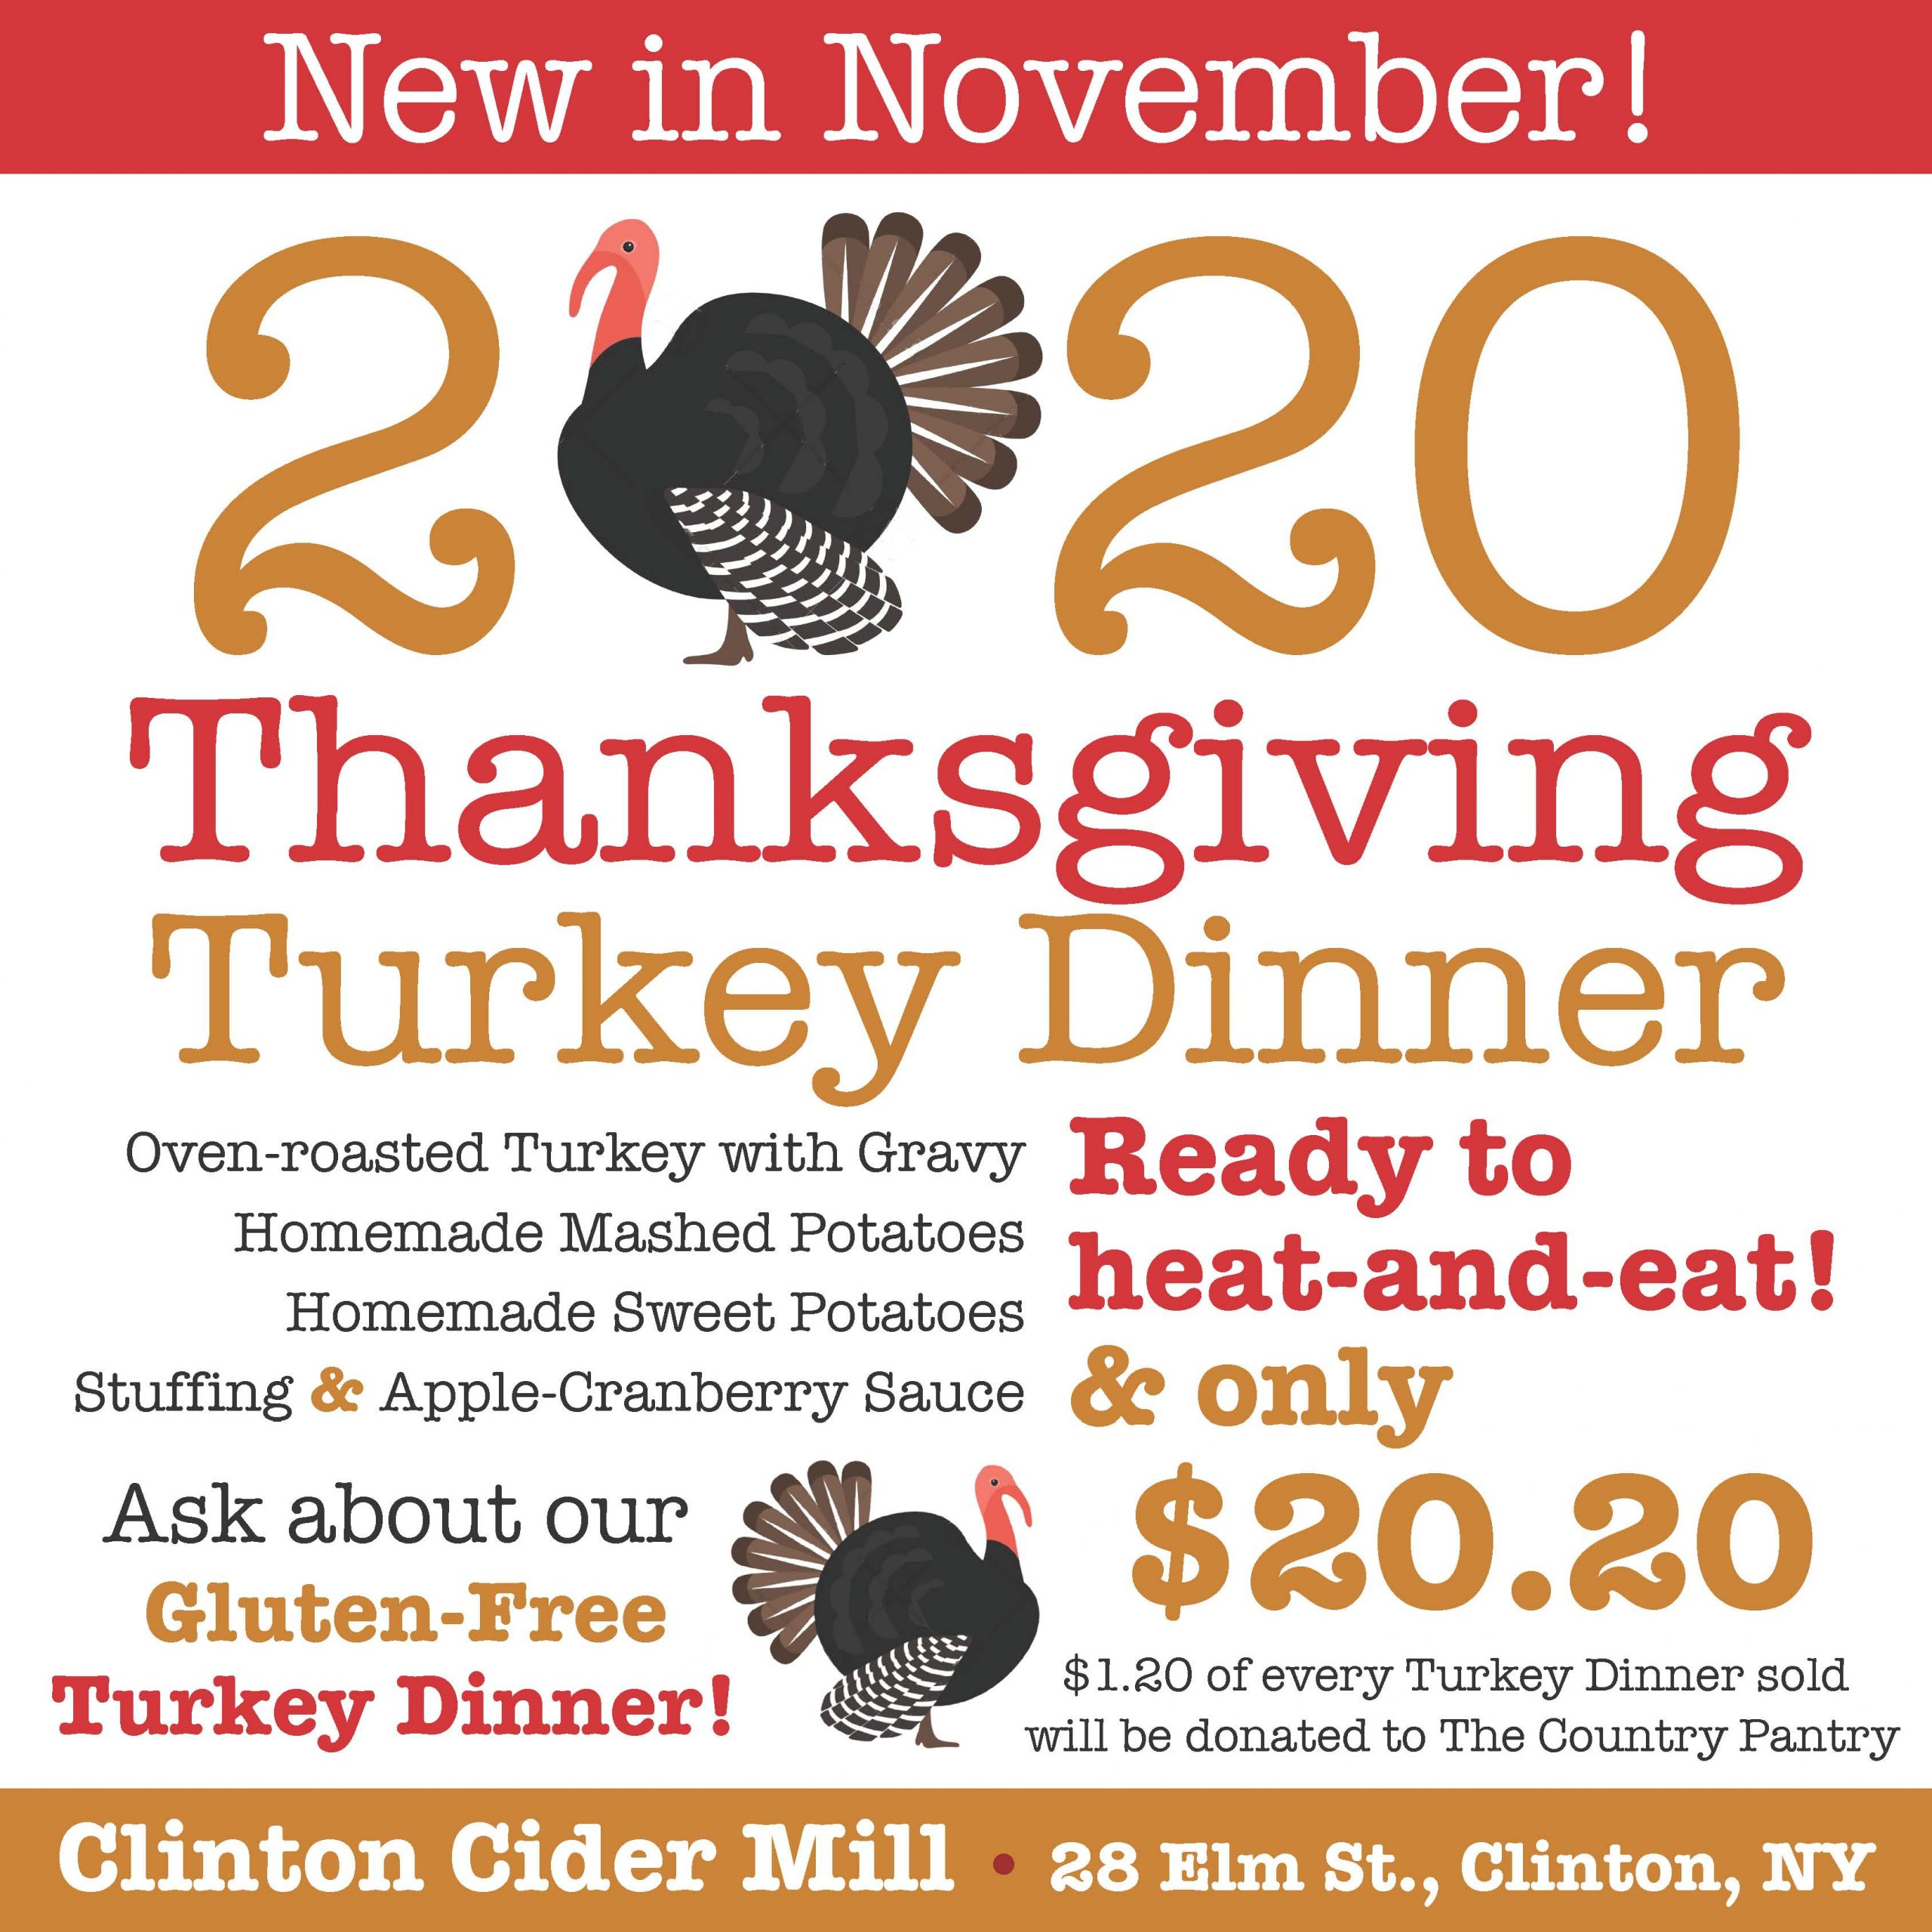 Thanksgiving dinner available!